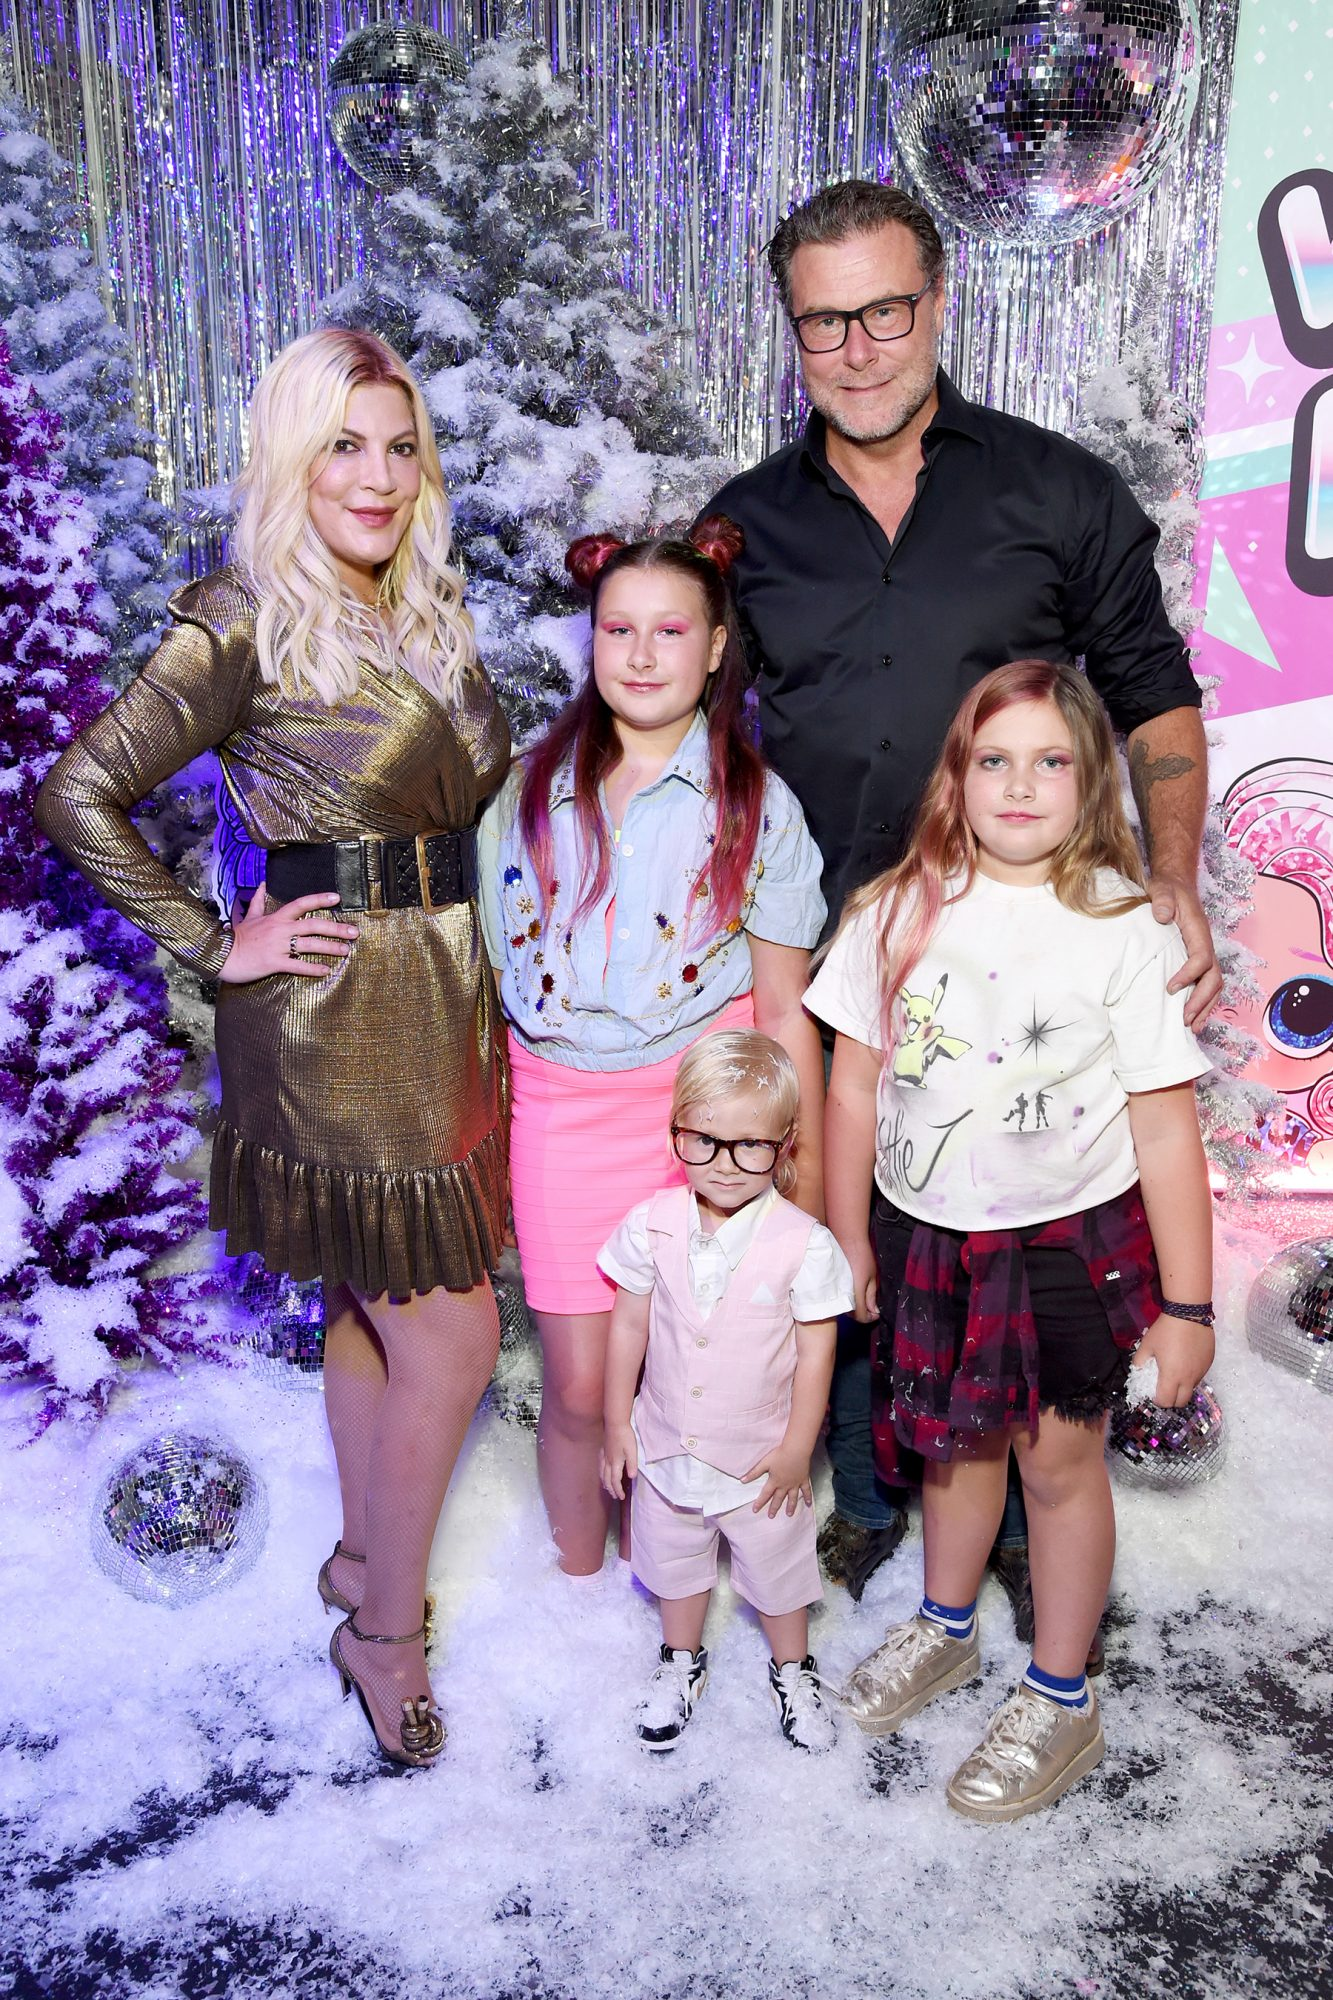 Tori Spelling, Stella Doreen McDermott, Dean McDermott, Beau Dean McDermott, and Hattie Margaret McDermott attend L.O.L. Surprise!